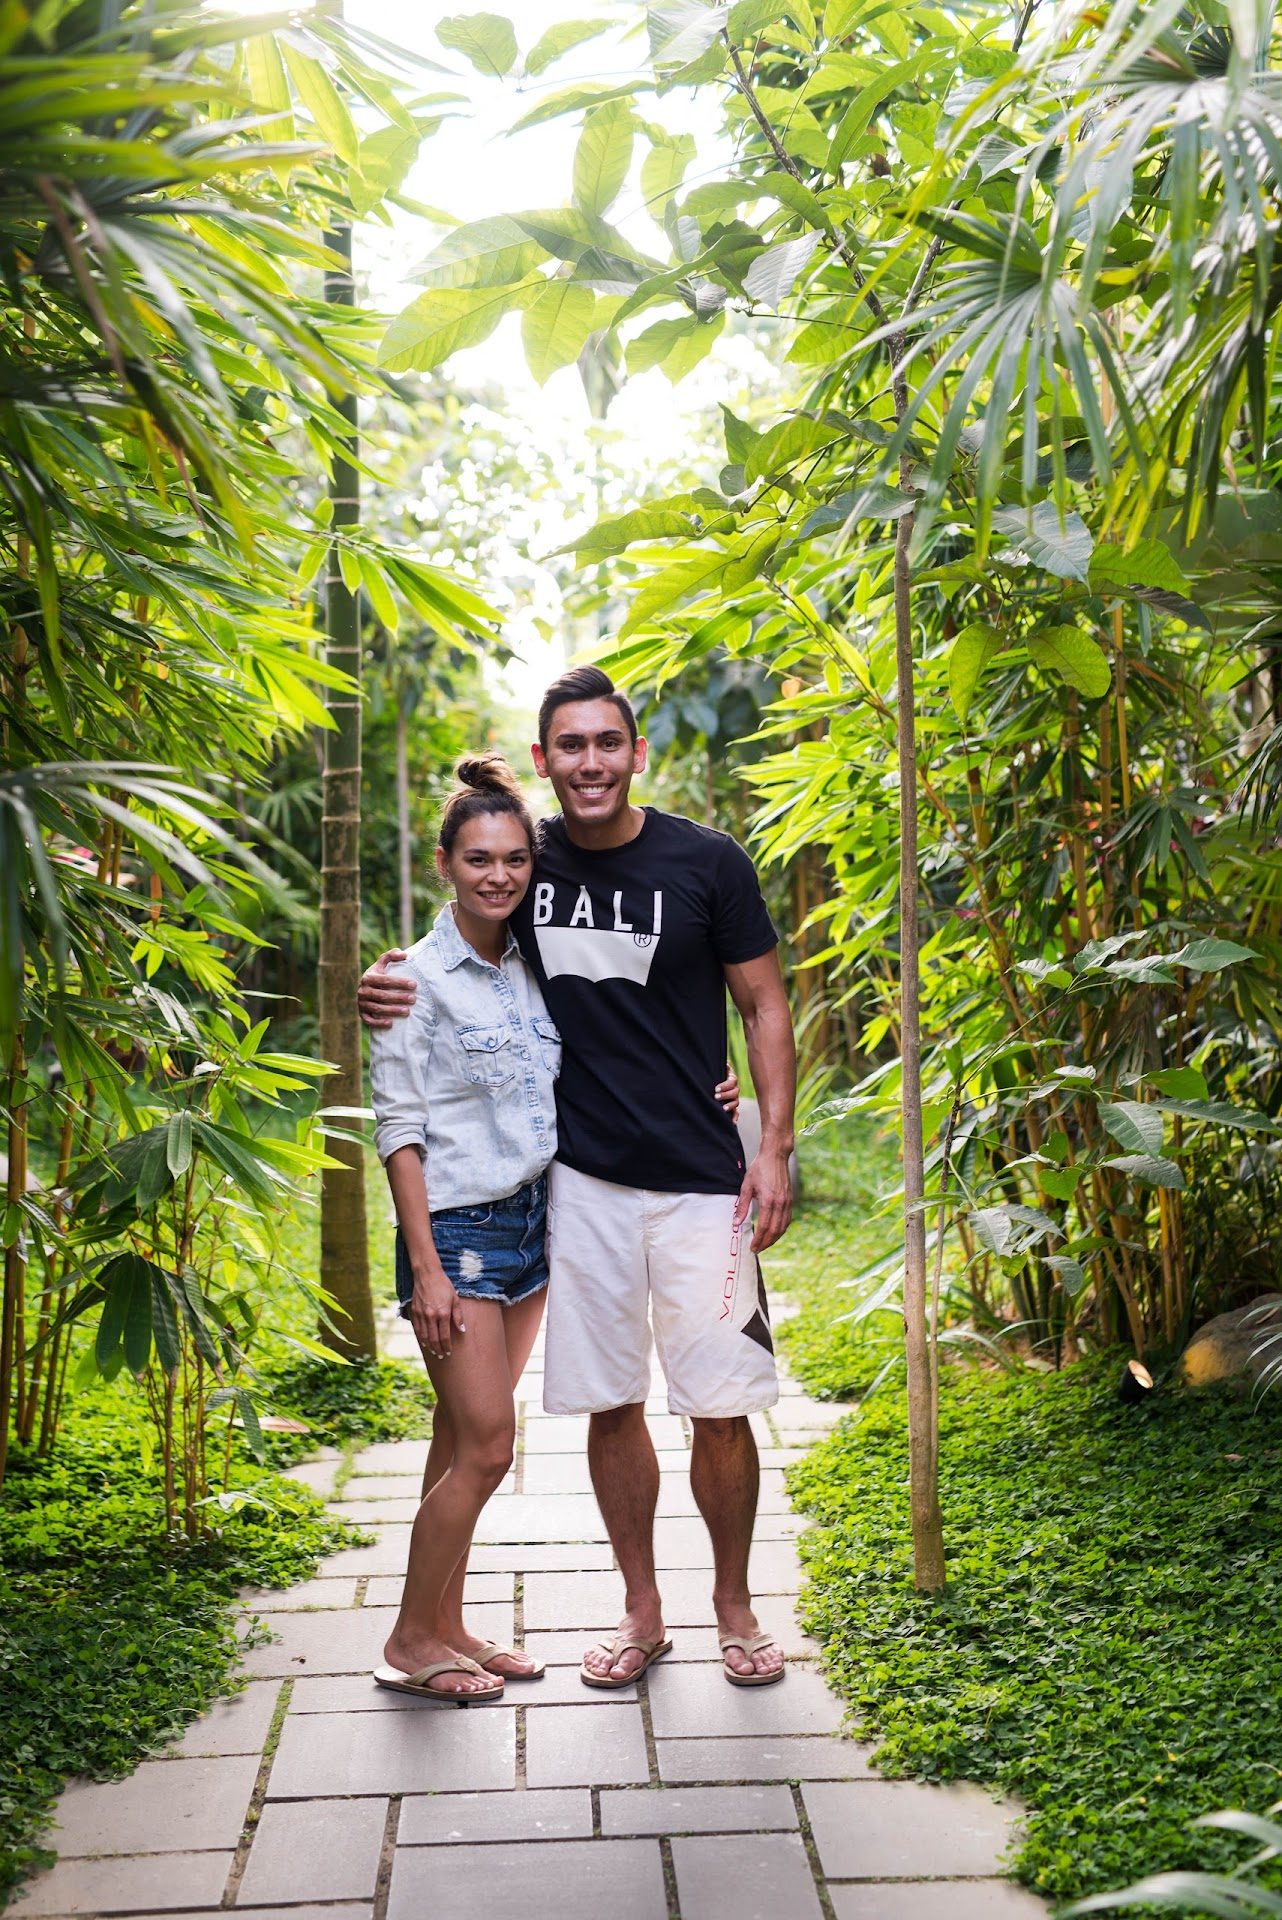 bali jungle, best hotels in bali, ubud, indonesia travel, bisma eight hotel review, tropical paradise, luxury hotel bali, couple travel bloggers, california san francisco based, bay area, mormon lds travel blogger